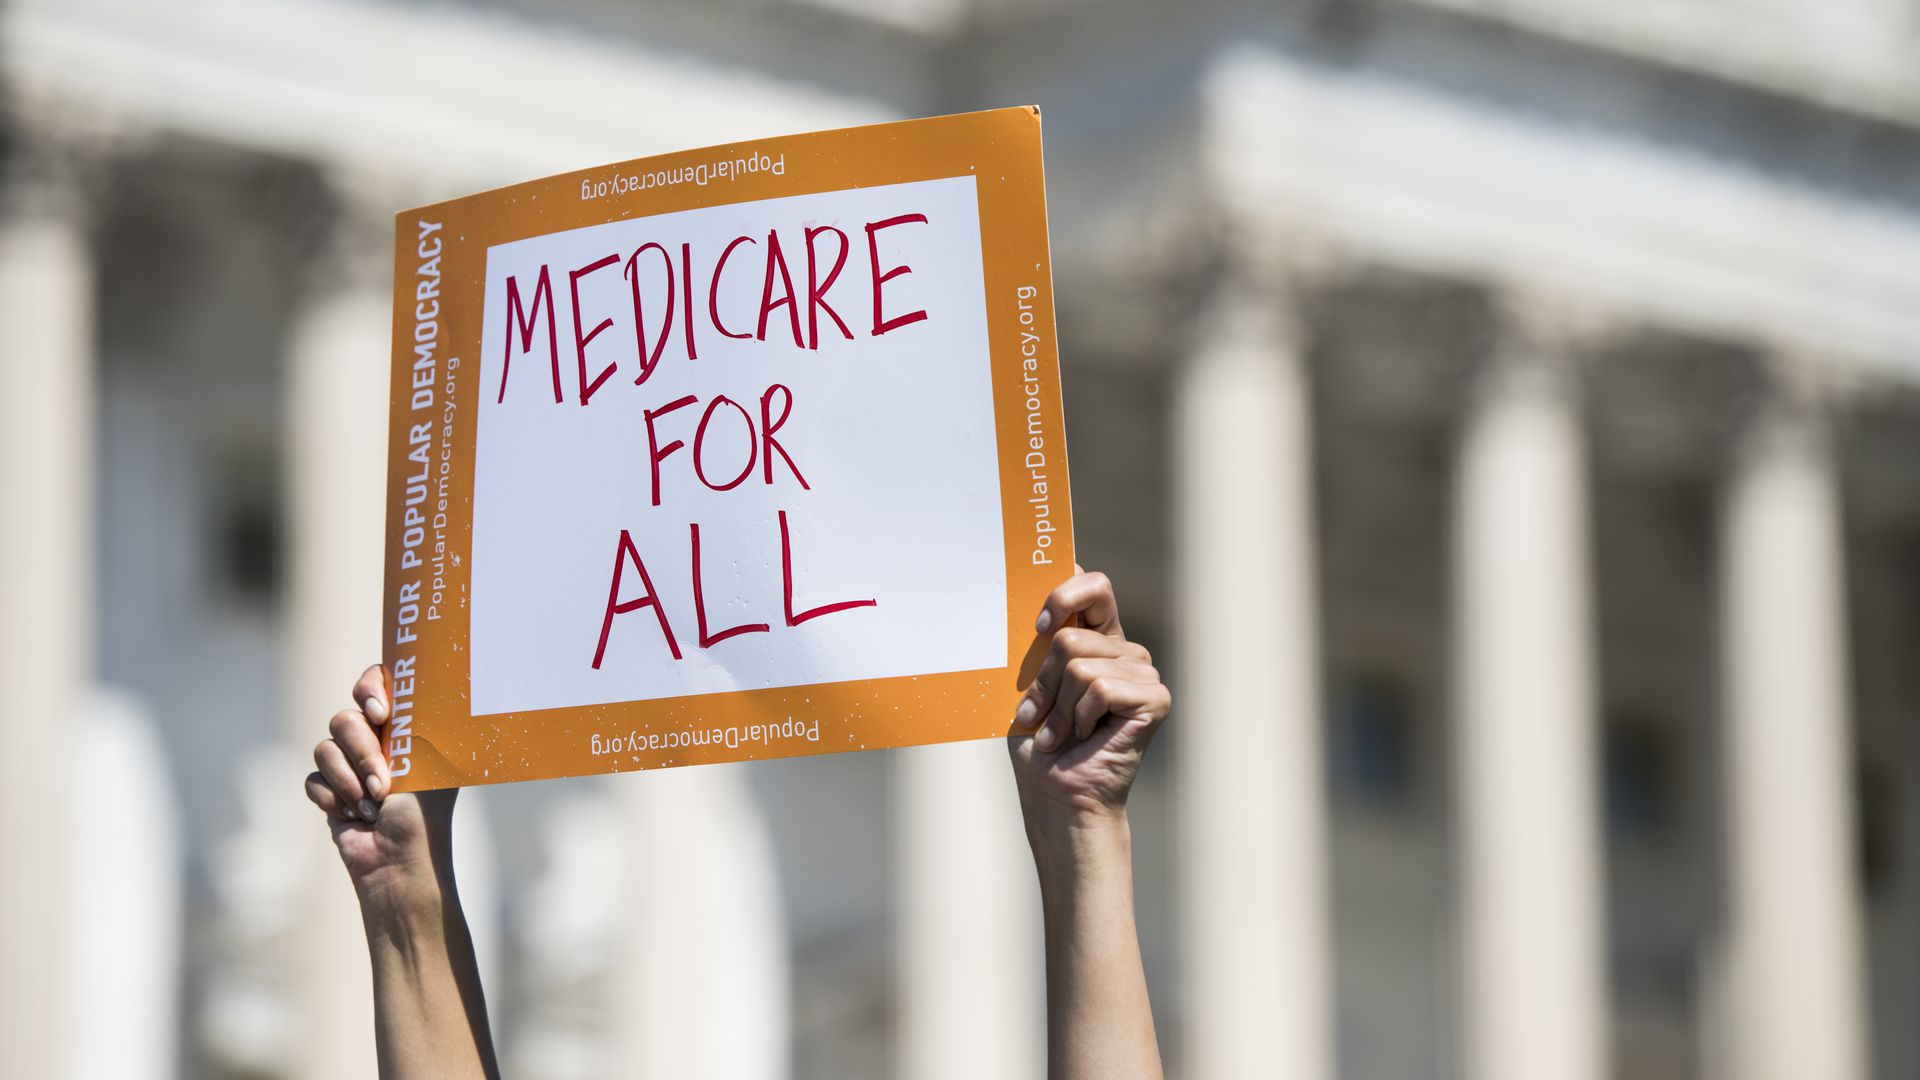 person holds up medicare for all sign